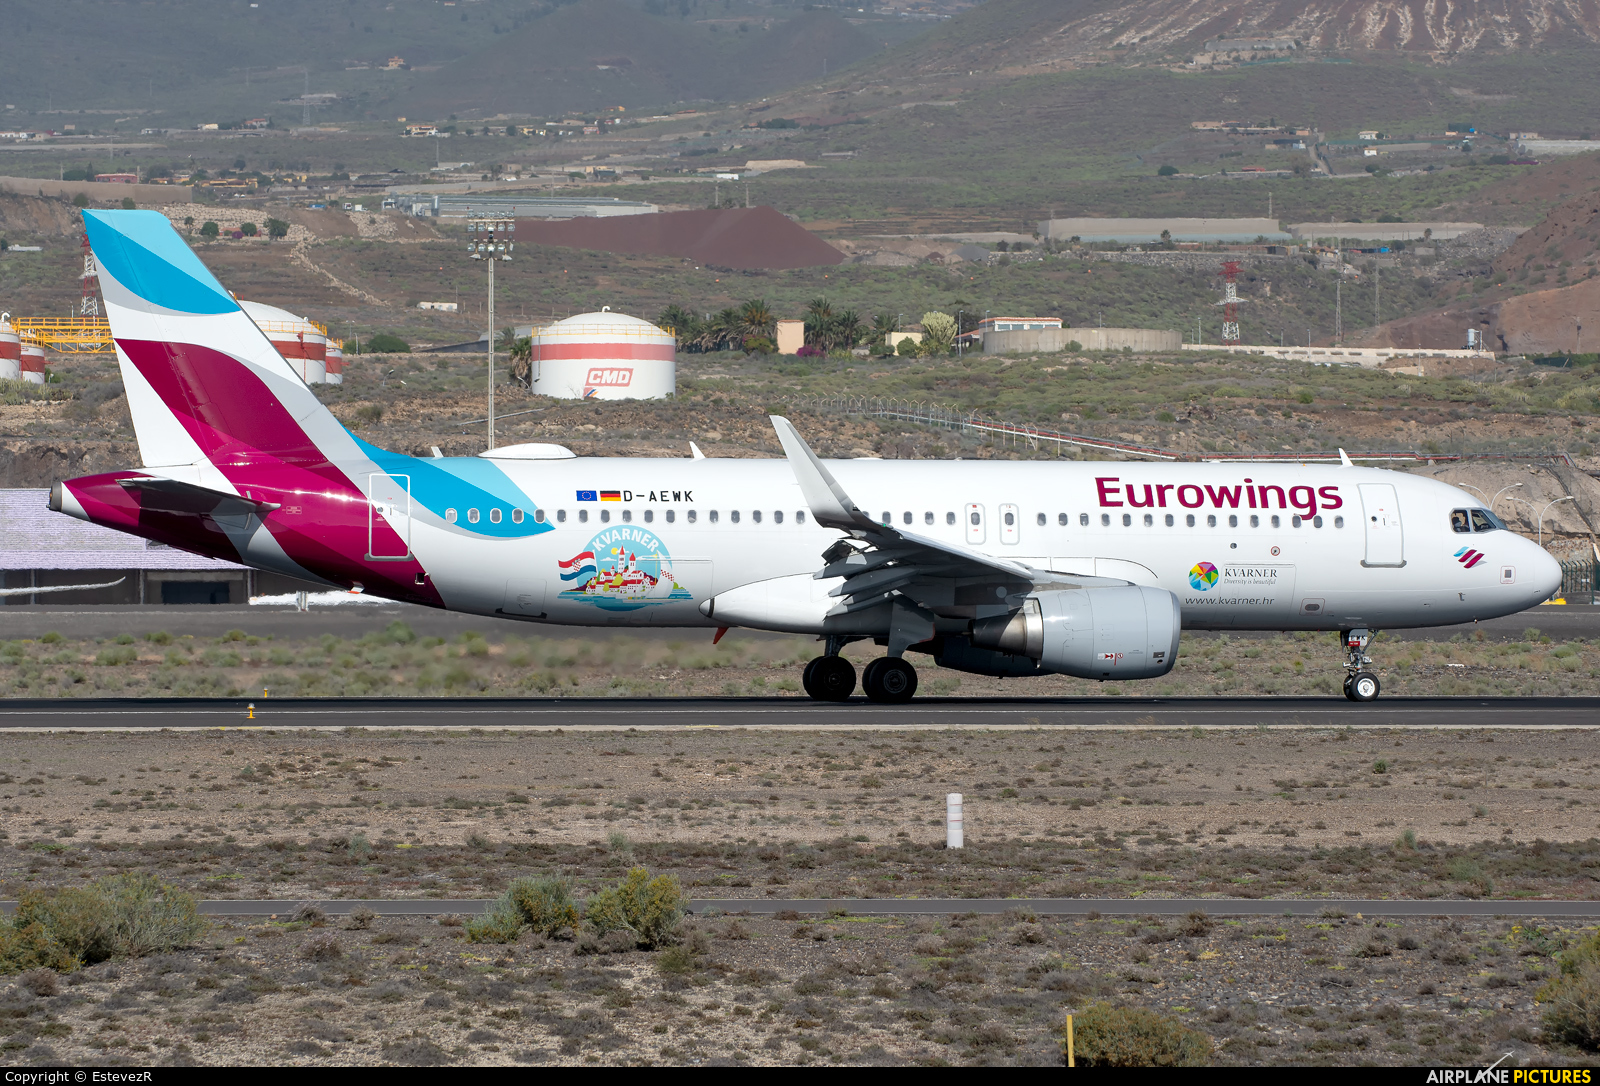 Eurowings D-AEWK aircraft at Tenerife Sur - Reina Sofia